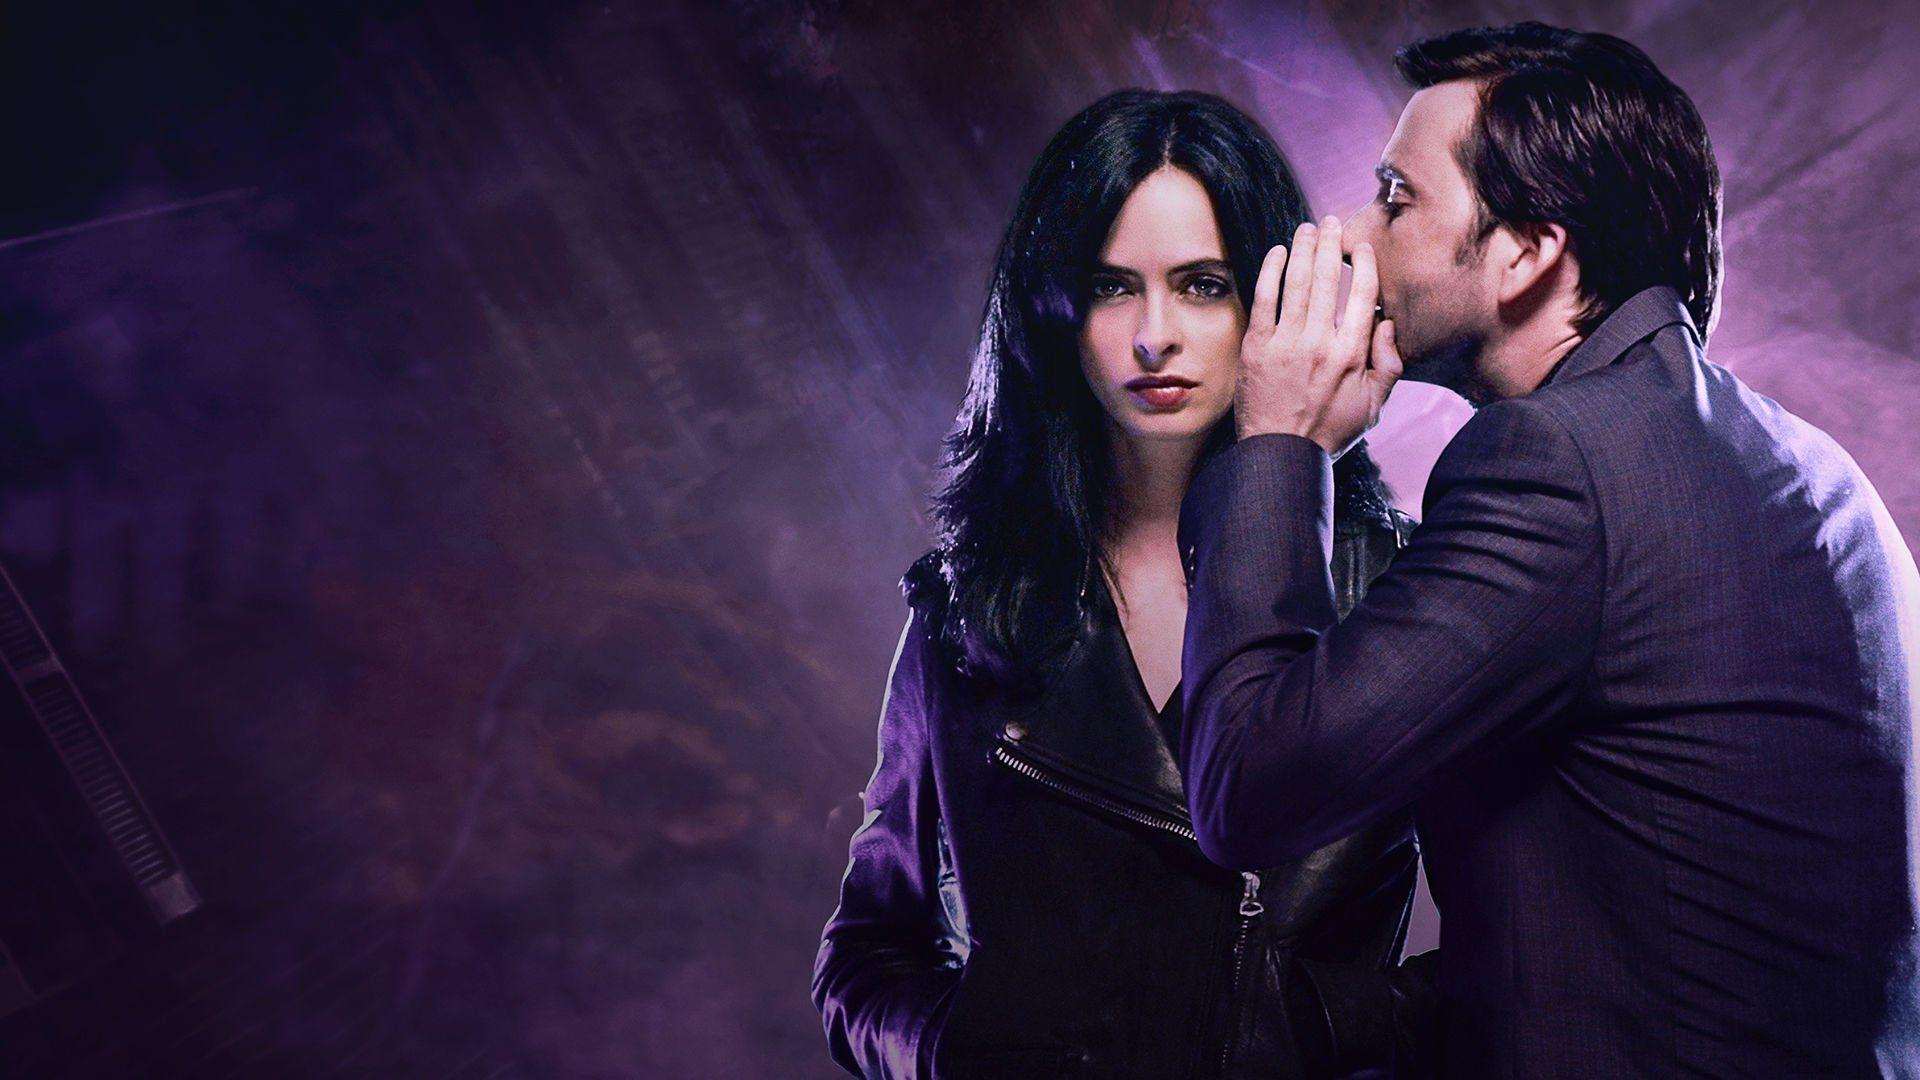 Jessica Jones Wallpapers Wallpaper Cave